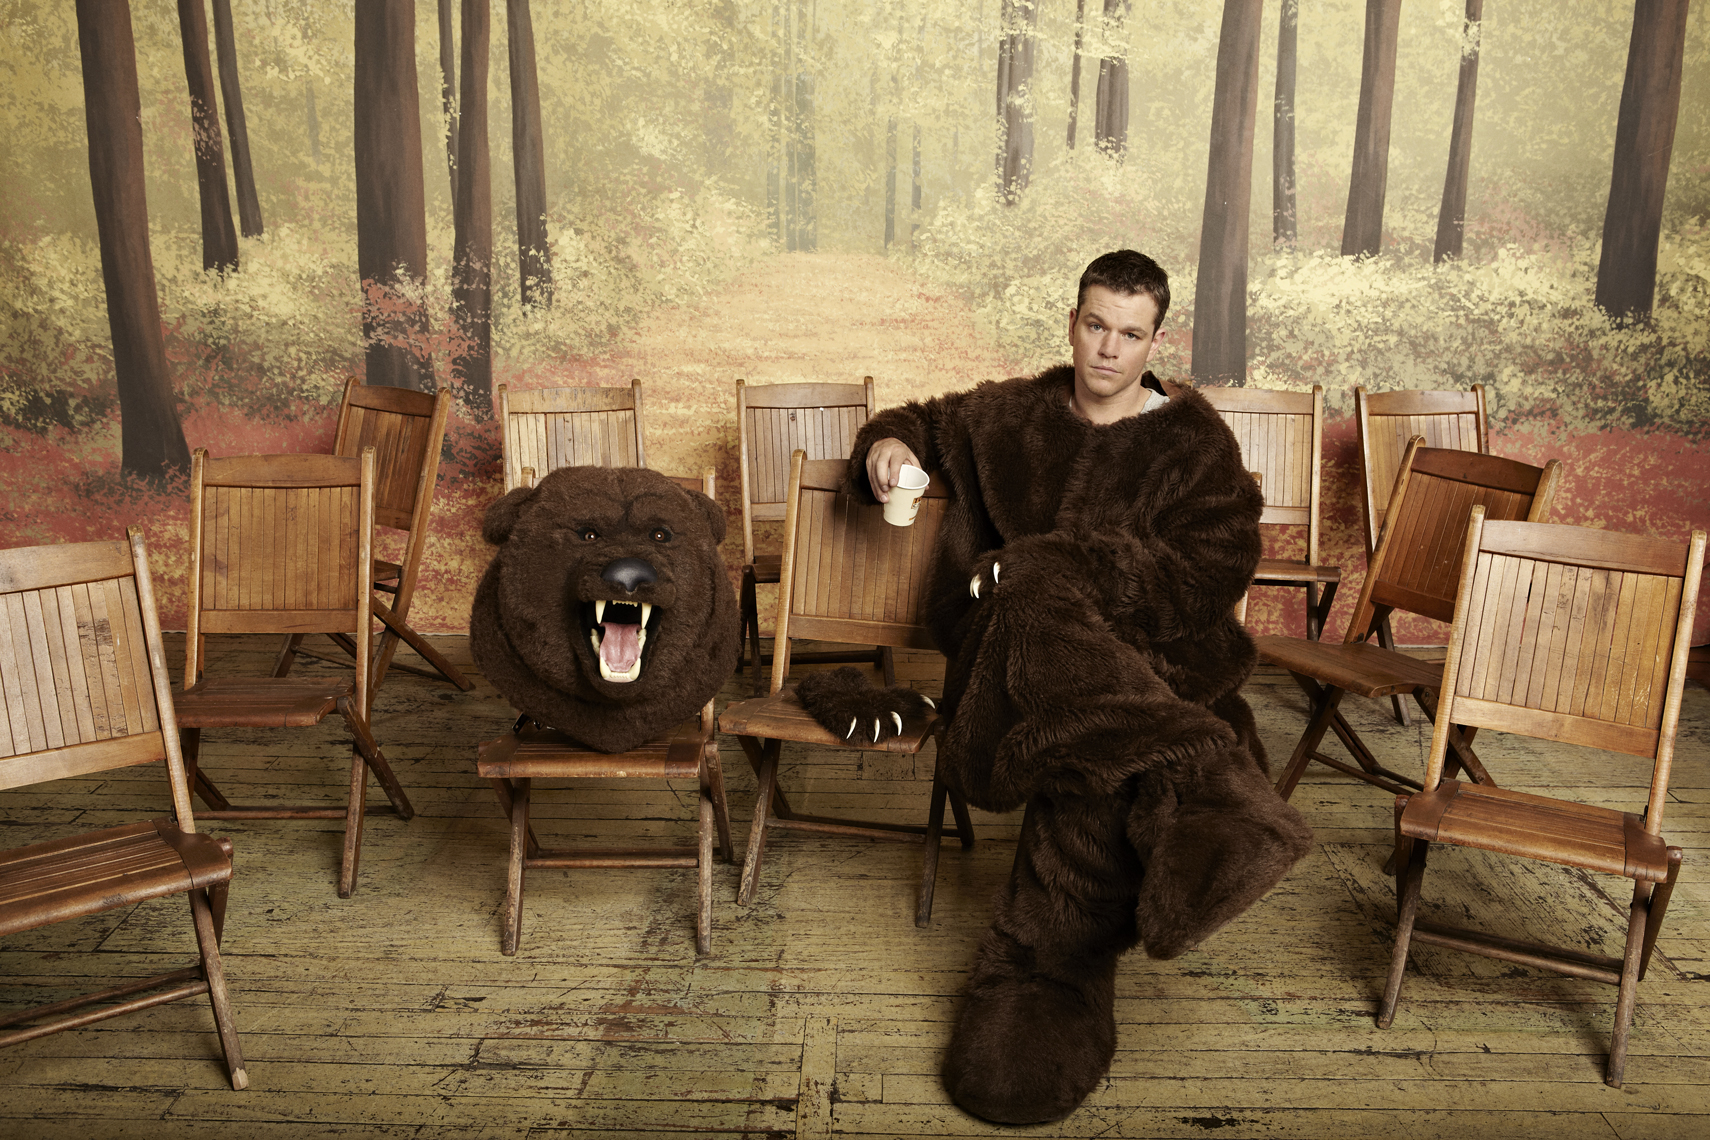 wMatt_Damon_Bear_Suit